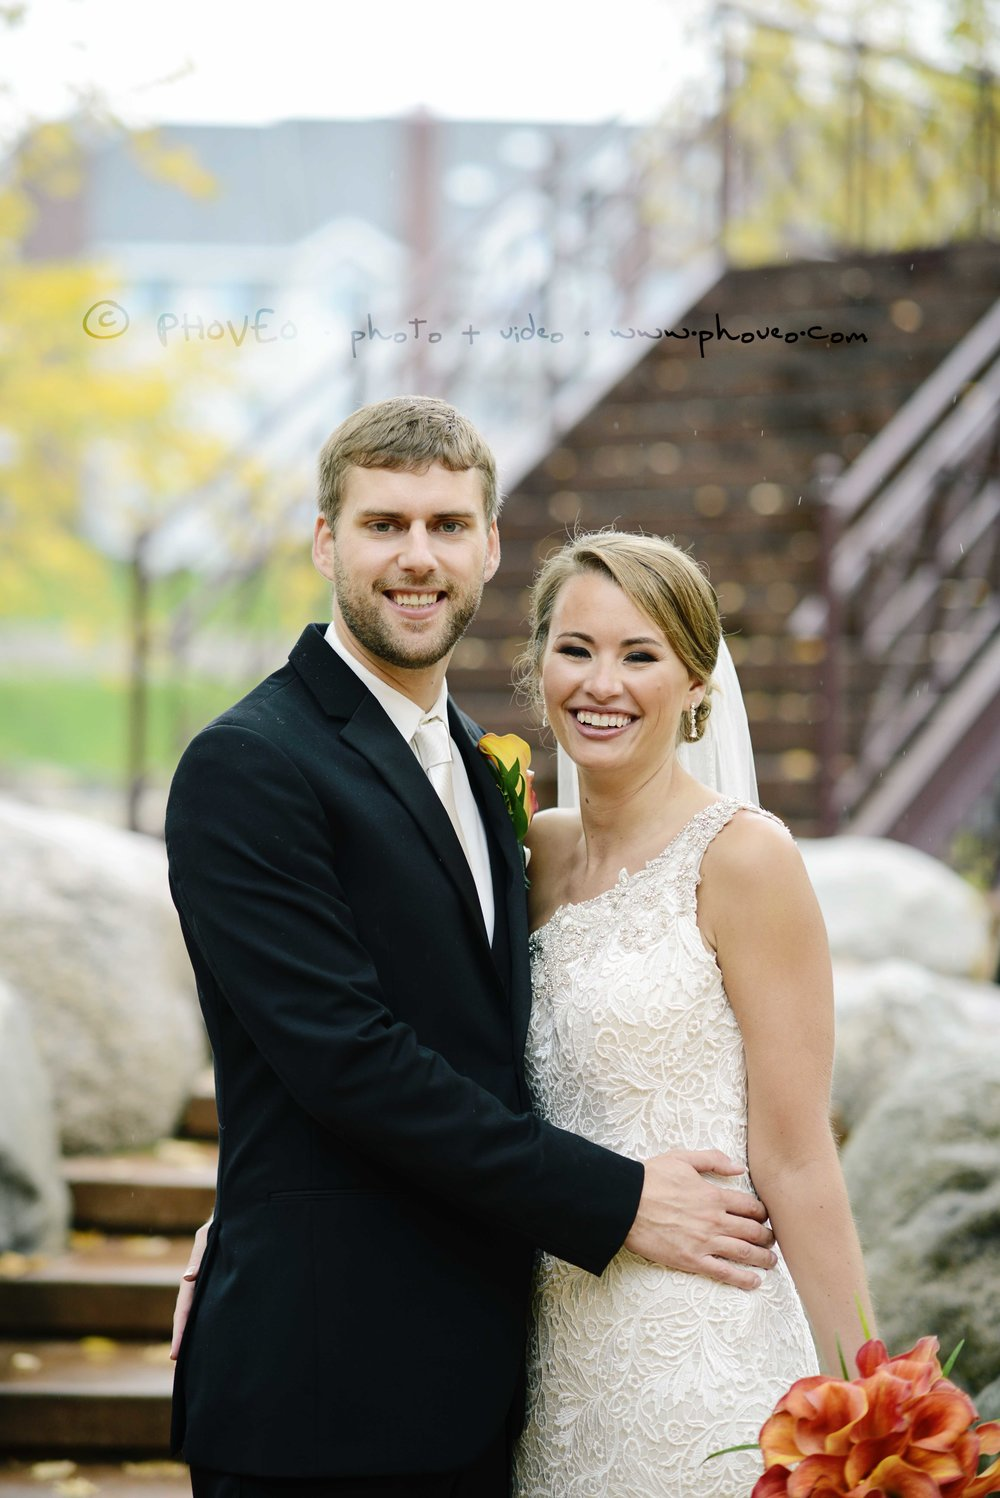 WM_20161029_Christine+Luke_170.jpg